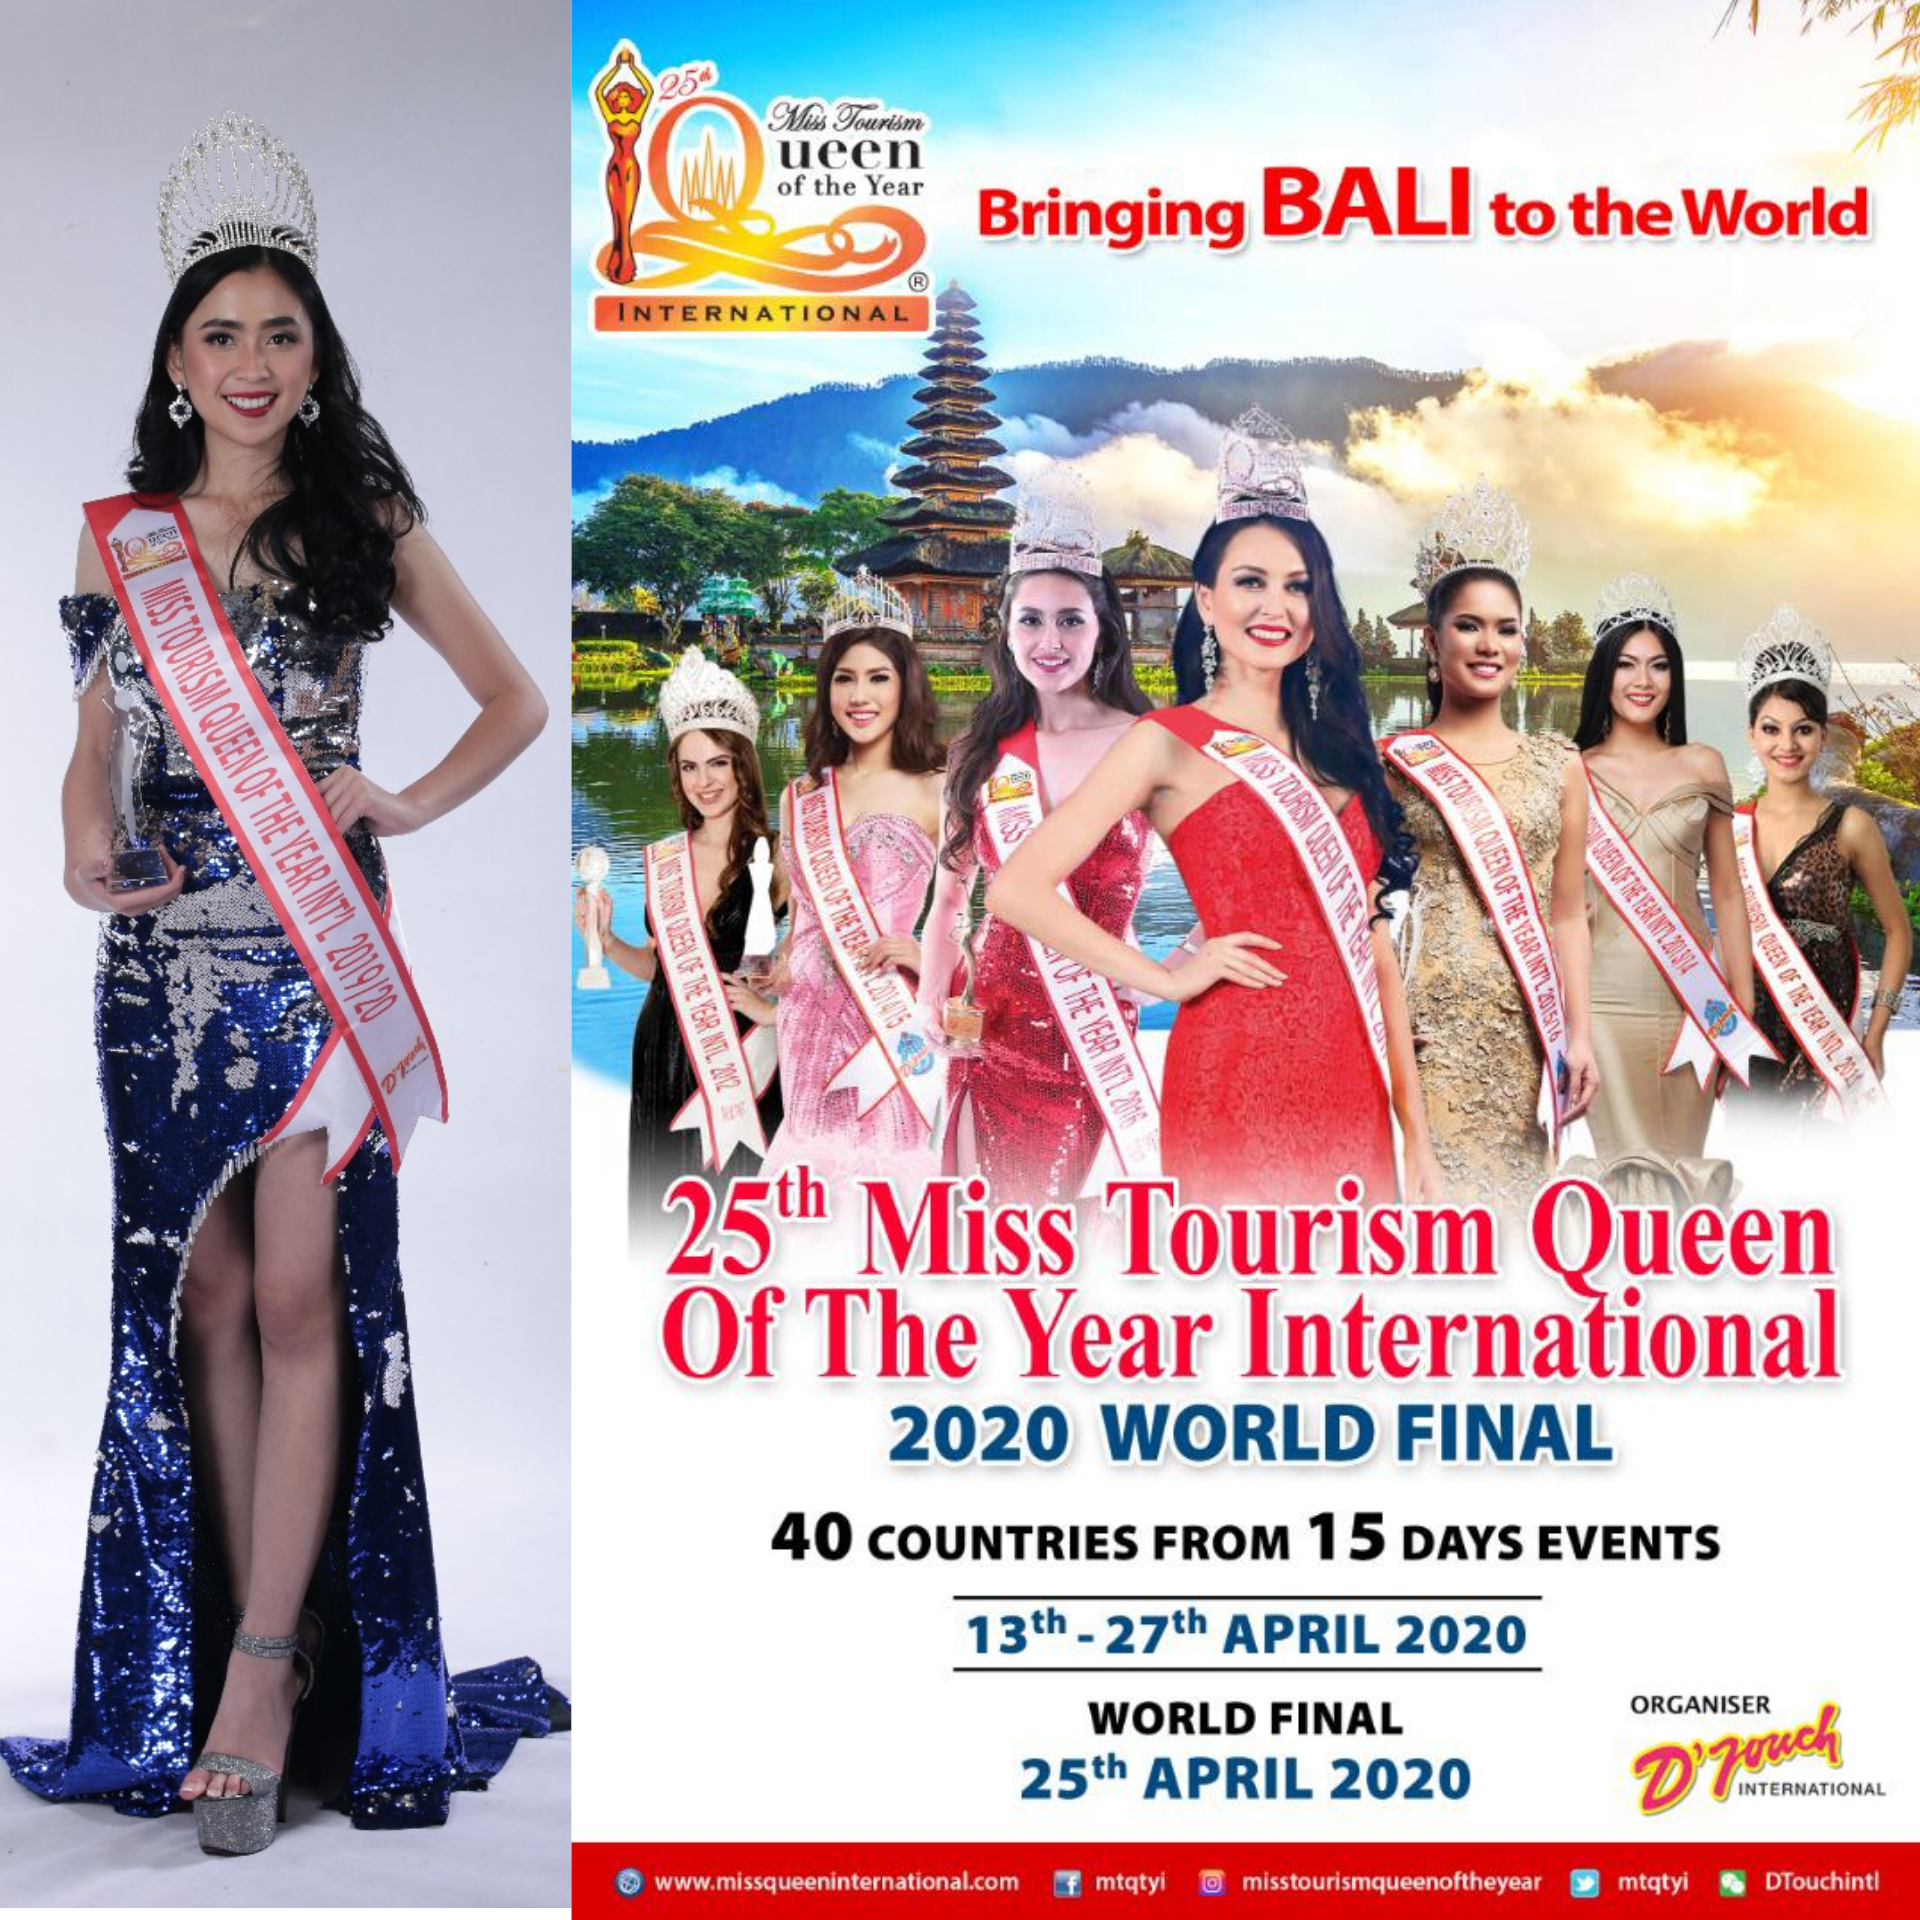 Miss-Tourism-Queen-Of-The-Year-International